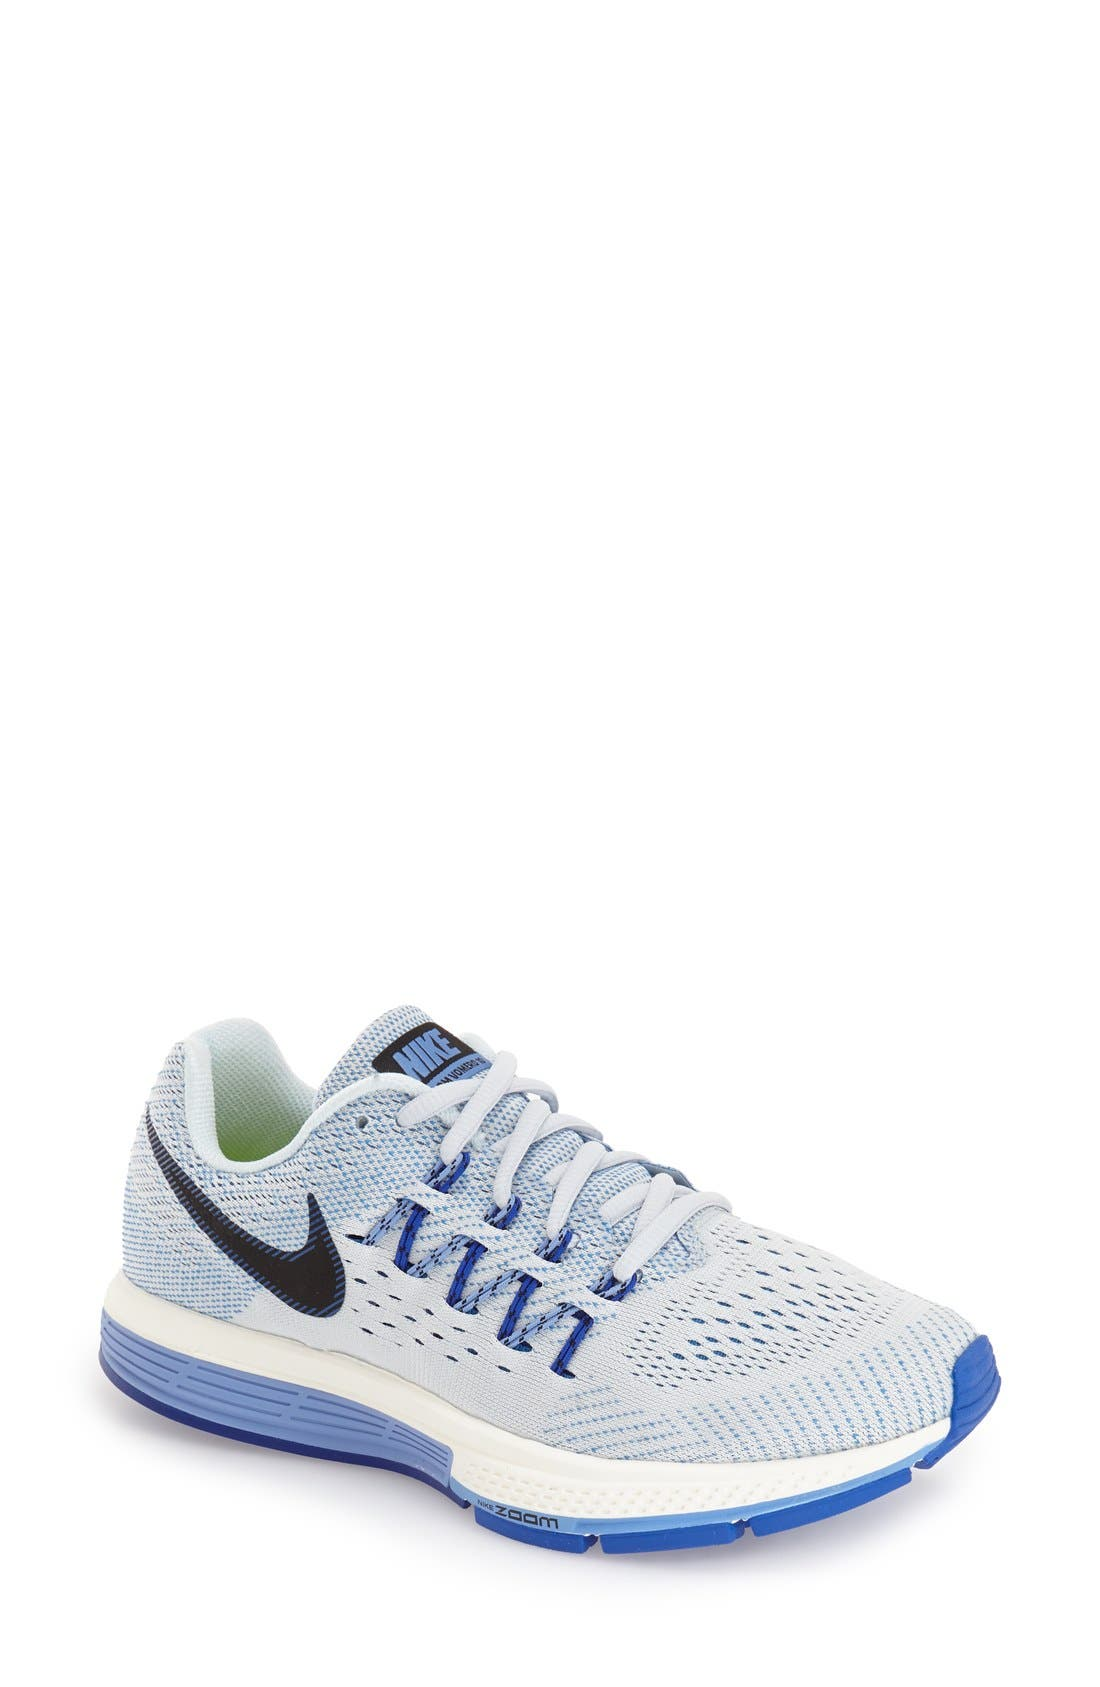 Main Image - Nike 'Air Zoom Vomero 10' Running Shoe (Women)